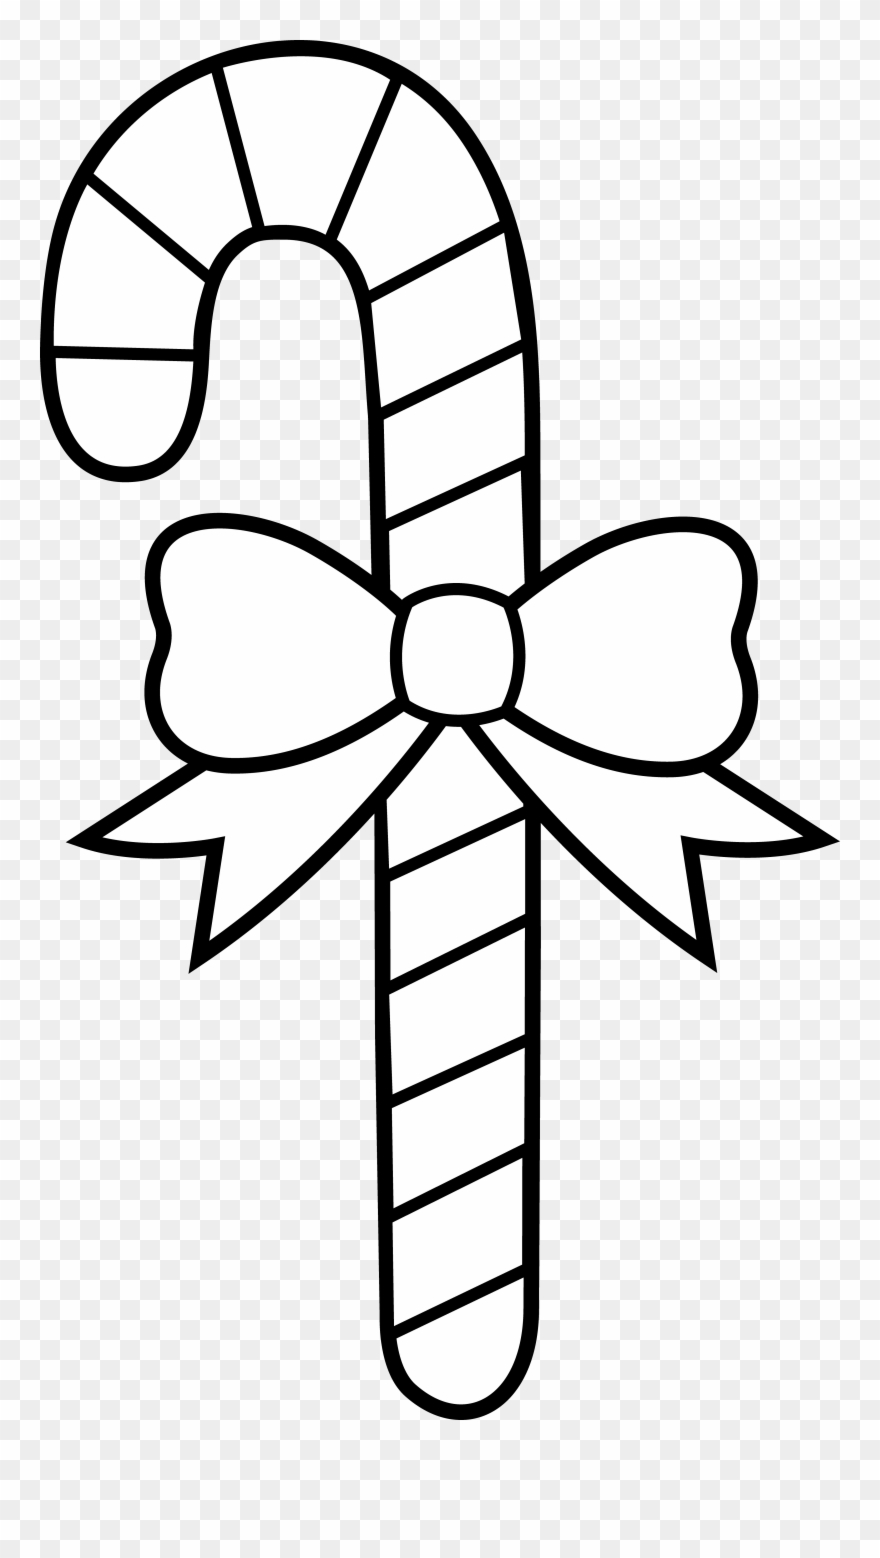 Candy Cane Coloring Pages Christmas Candy Cane Coloring.